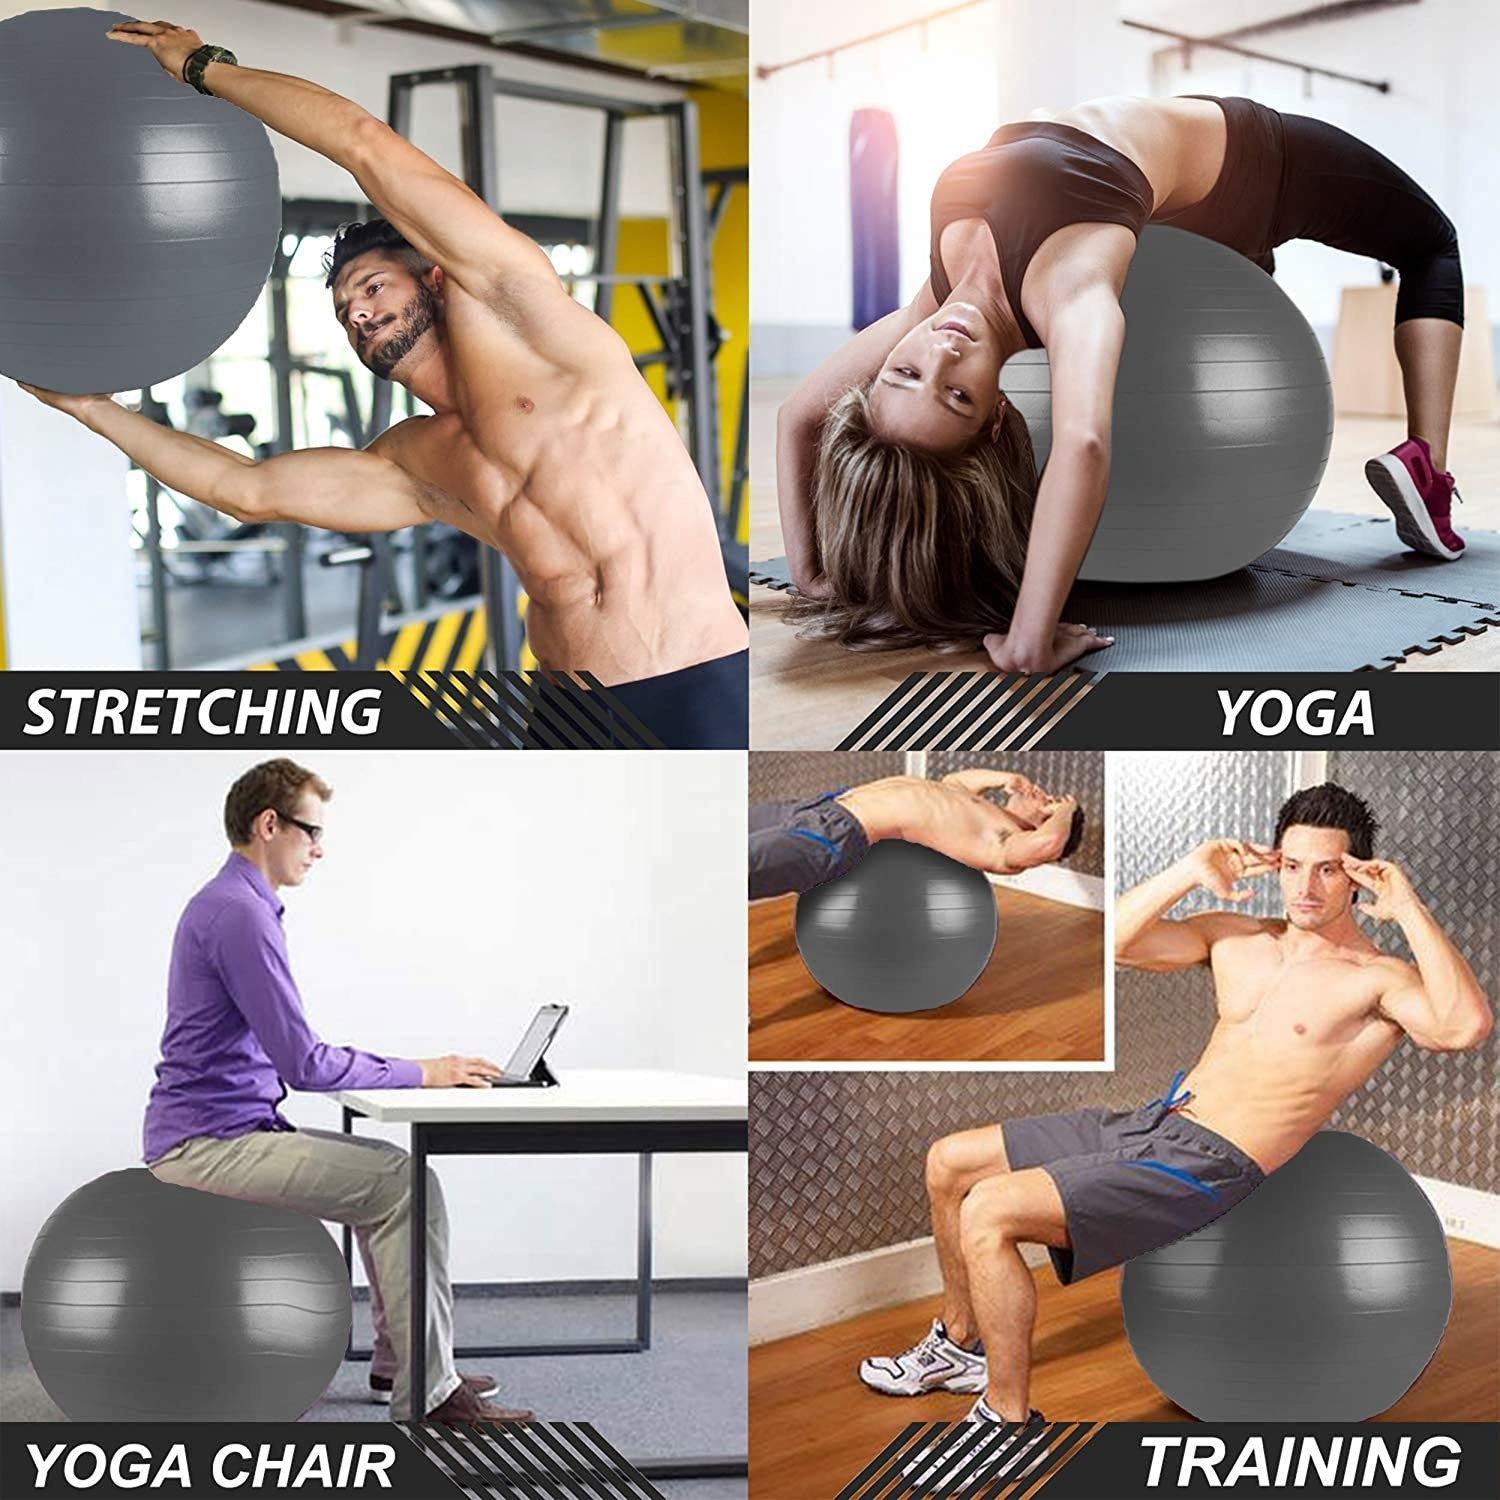 People using exercise ball for stretching, yoga training and as a chair